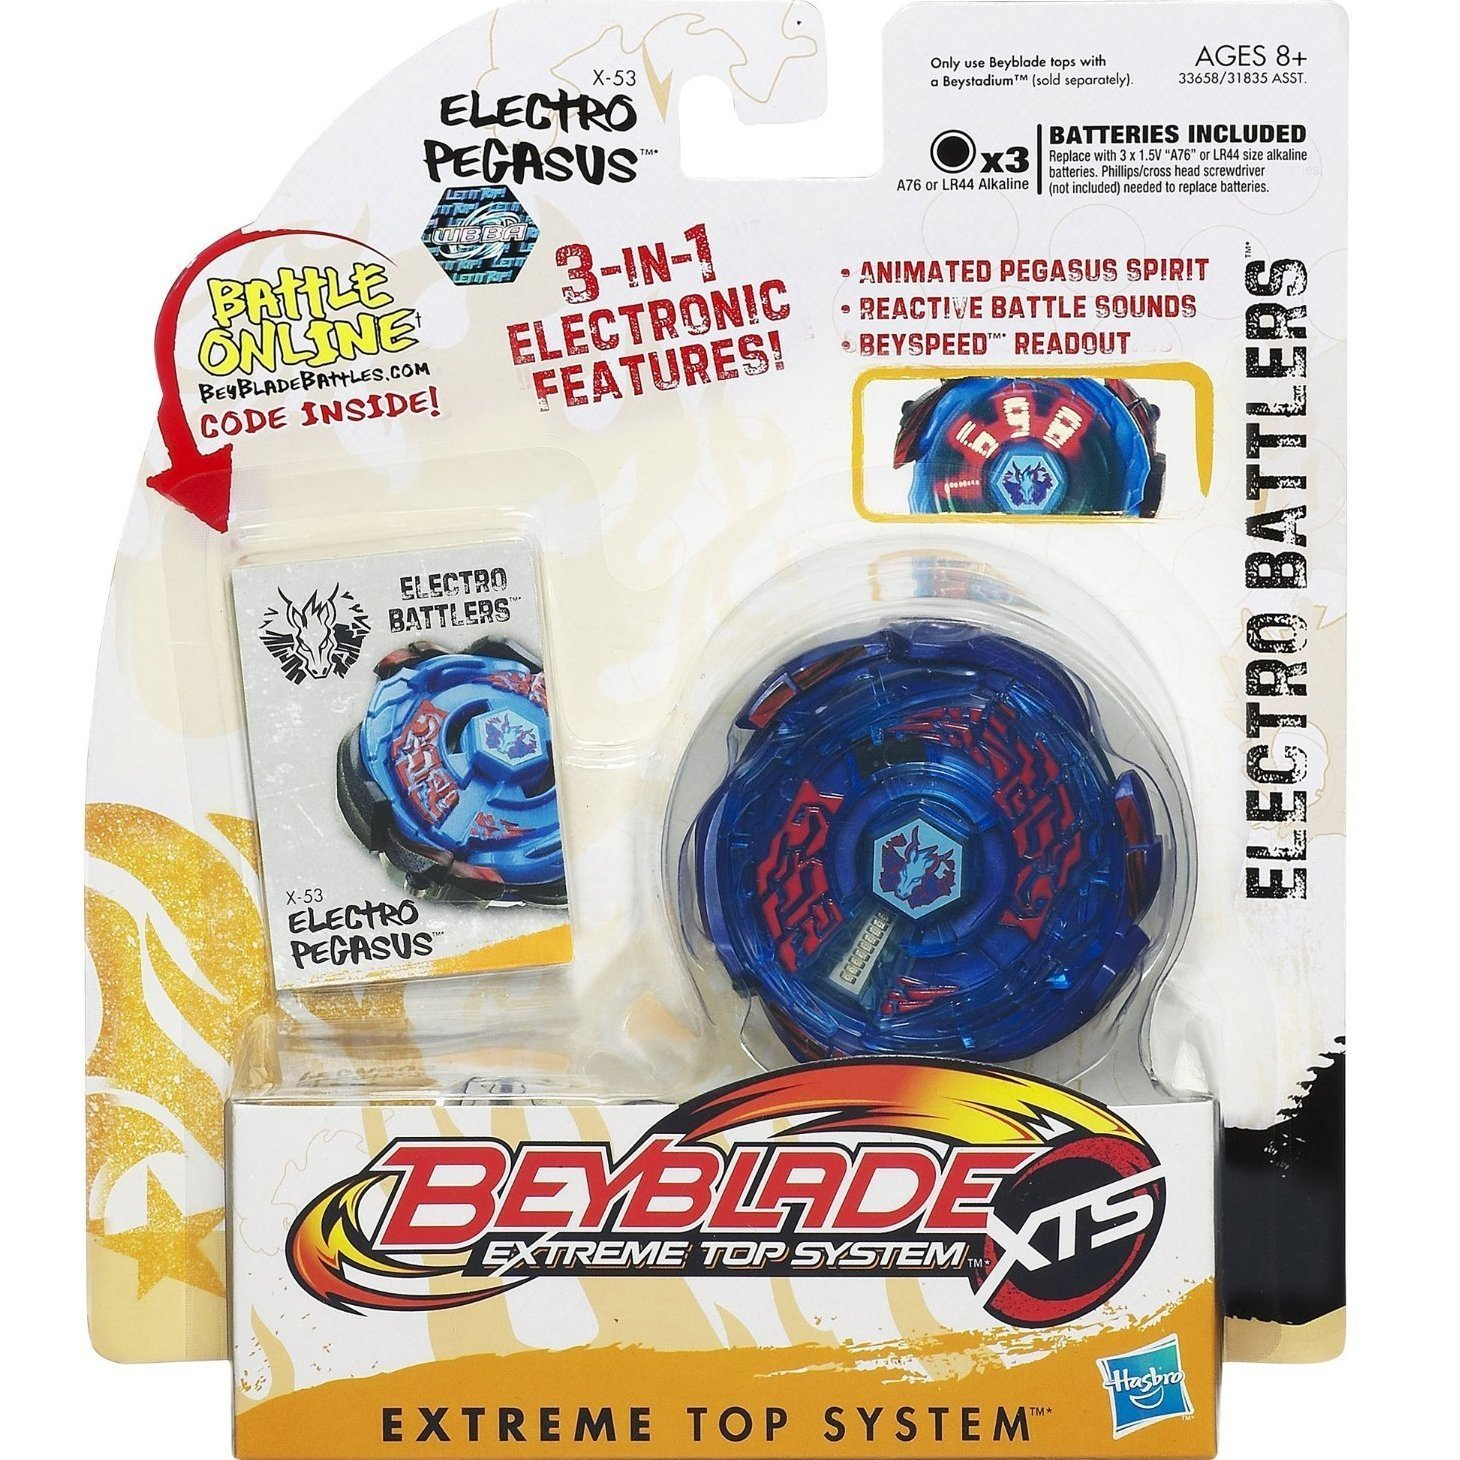 Hasbro Year 2011 Beyblade Extreme Top System XTS Electro Battlers : X-53 ELECTRO PEGASUS with 3 in 1 Electronic Features (Animated Pegasus Spirit, Reactive Battle Sounds and Beyspeed Readout) Plus Spin Launcher, Ripcord and Battle Online Code by Beyblade [並行輸入品] B01COLX5JU